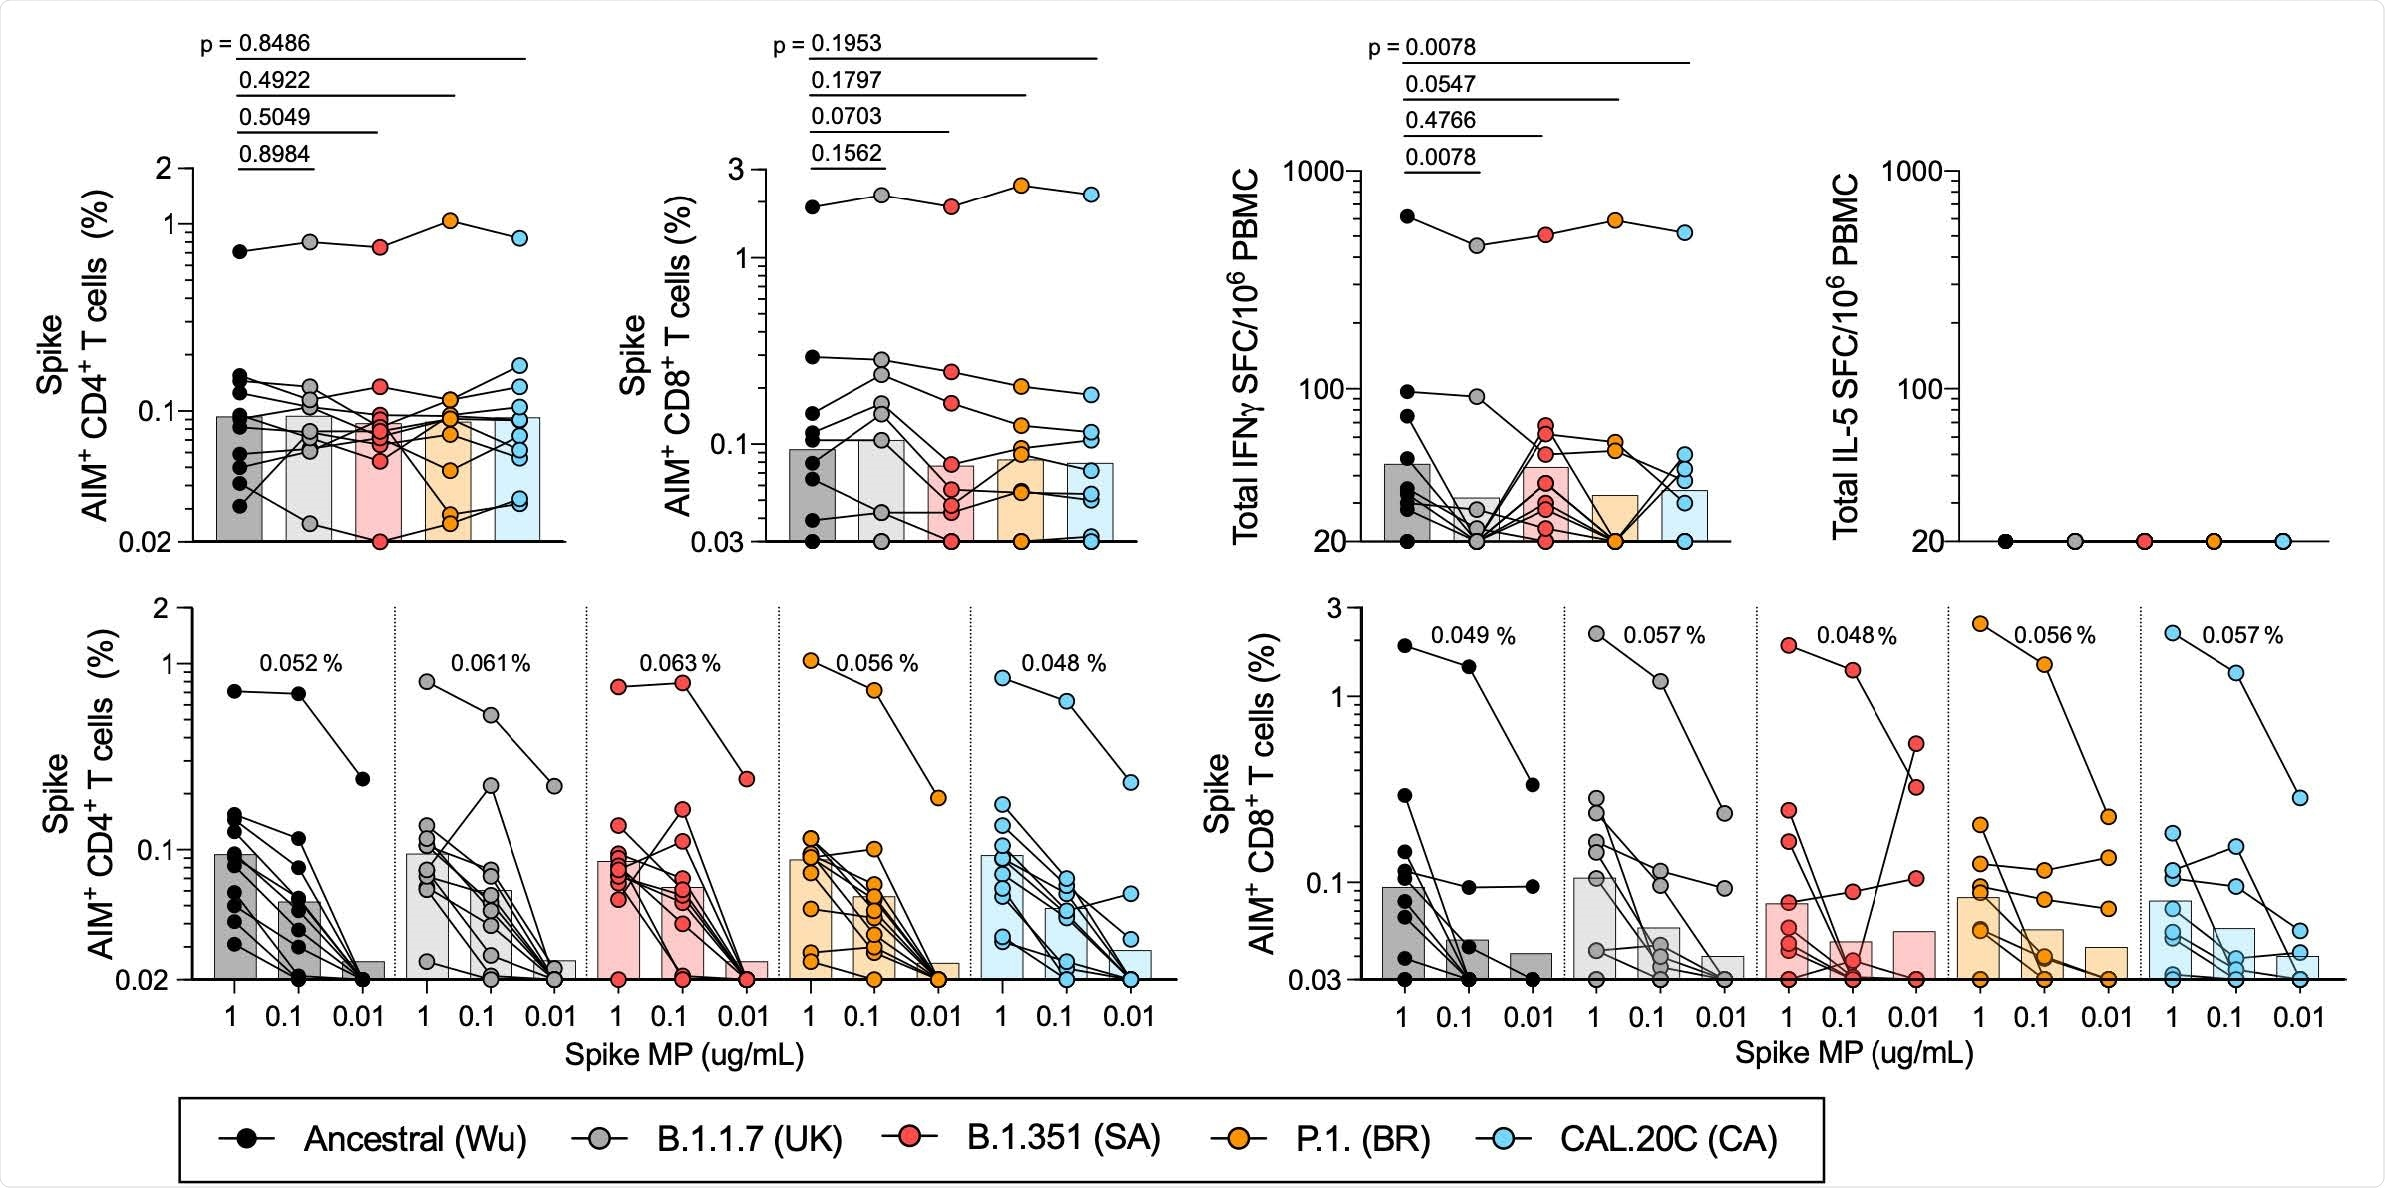 T cell responses of COVID-19 convalescent individuals against SARS-CoV-2 Spike for the different variants. PBMCs of COVID-19 convalescent individuals (n=11) were stimulated with the Spike MPs corresponding to the ancestral reference strain (Wu, black) and the B.1.1.7 (UK, grey), B.1.351 (SA, red), P.1 (BR, orange) and CAL.20C (CA, light blue) SARS-CoV-2 variants. A) Percentages of AIM+ (OX40+CD137+) CD4+T cells. B) Percentages of AIM+ (CD69+CD137+) CD8+ T cells. C) IFNγ spot forming cells (SFC) per million PBMCs D) IL-5 SFC per million PBMCs. Paired comparisons of Wuhan S MP versus each of the variants were performed by Wilcoxon test and are indicated by the p values in panels A-C. The data shown in panels A and B are plotted to show the Spike MPs titration (1 μg/mL, 0.1 μg/mL, 0.01 μg/mL) for CD4+ (E) and CD8+ (F) T cells in each SARS-CoV-2 variant and the geometric mean of the 0.1ug/mL condition is listed above each titration. In all panels, the bars represent the geometric mean.